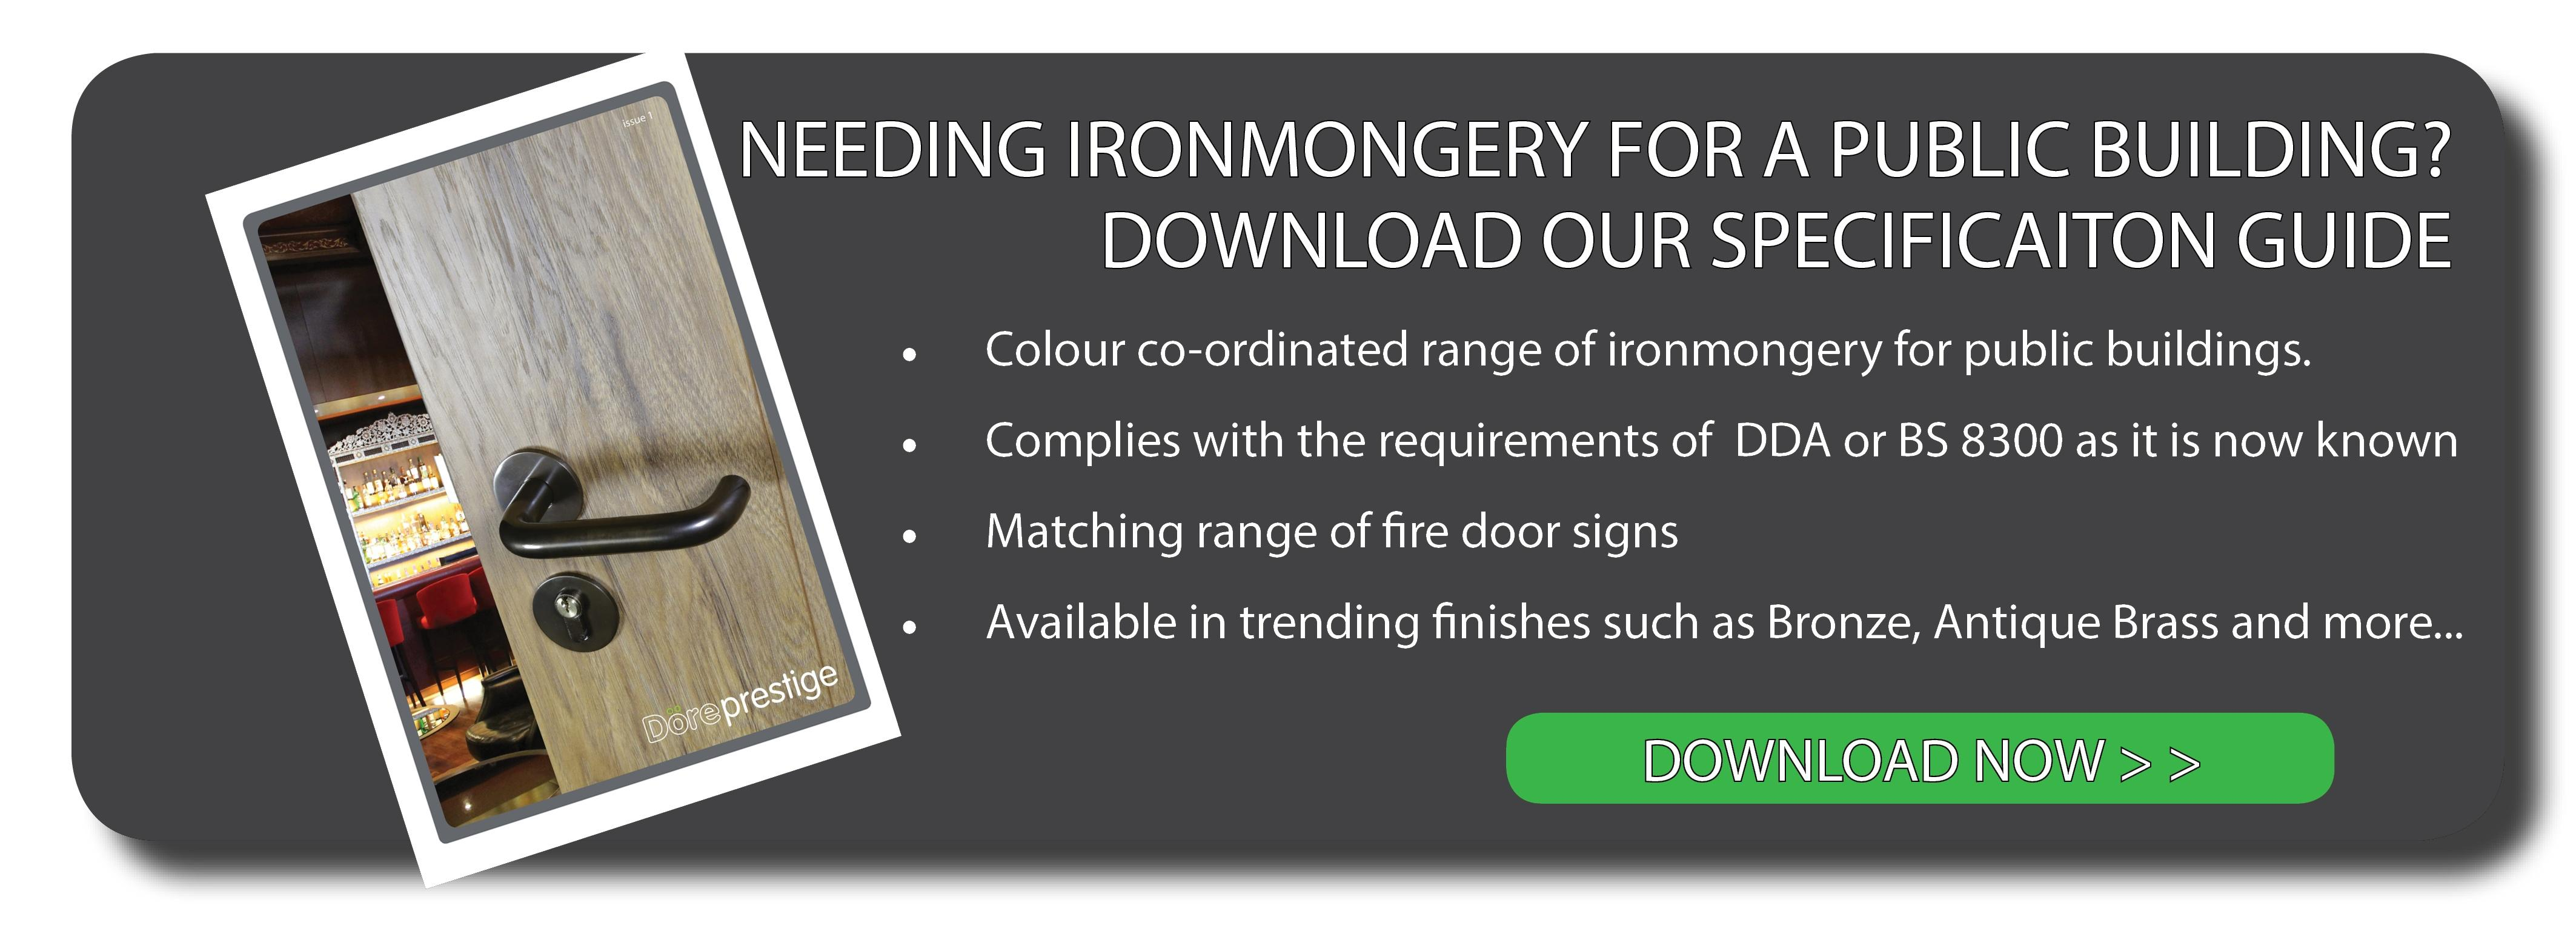 Needing ironmongery for a public building?